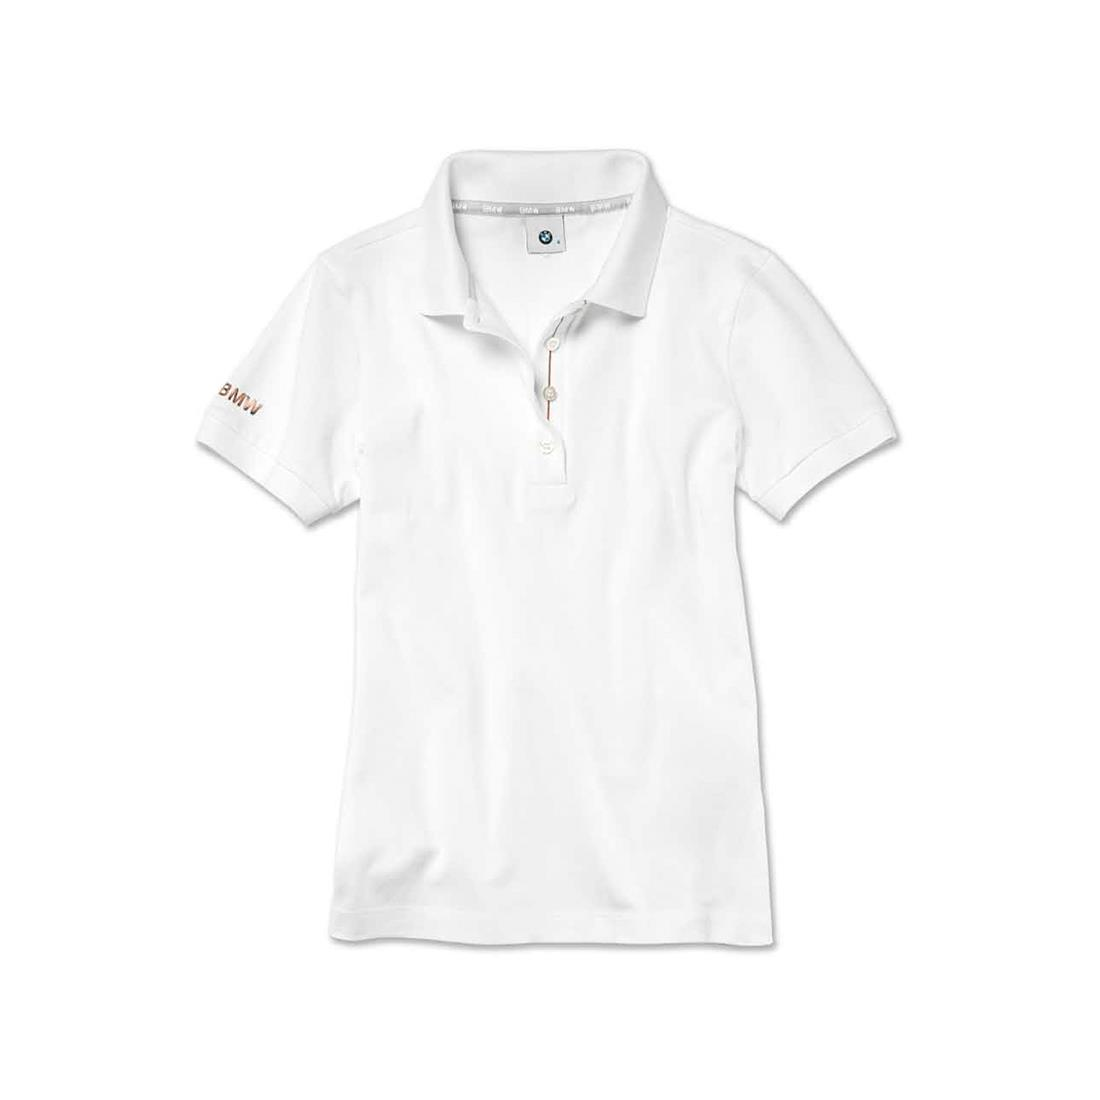 BMW POLO SHIRT LADIES